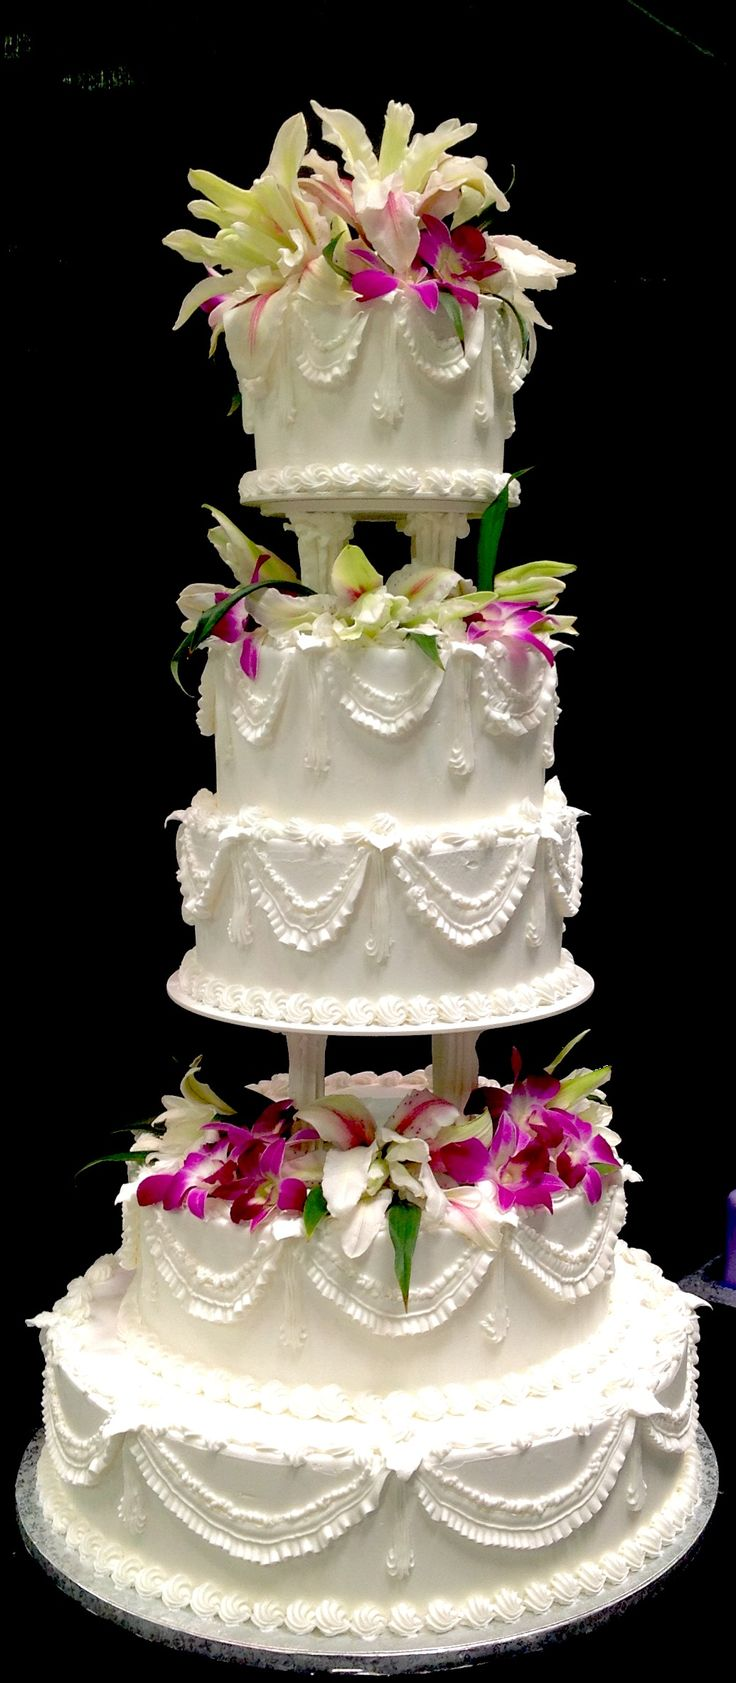 wedding cakes los angeles prices%0A   tier classic white buttercream wedding cake with fresh orchid accents  from fifth ave cakes in